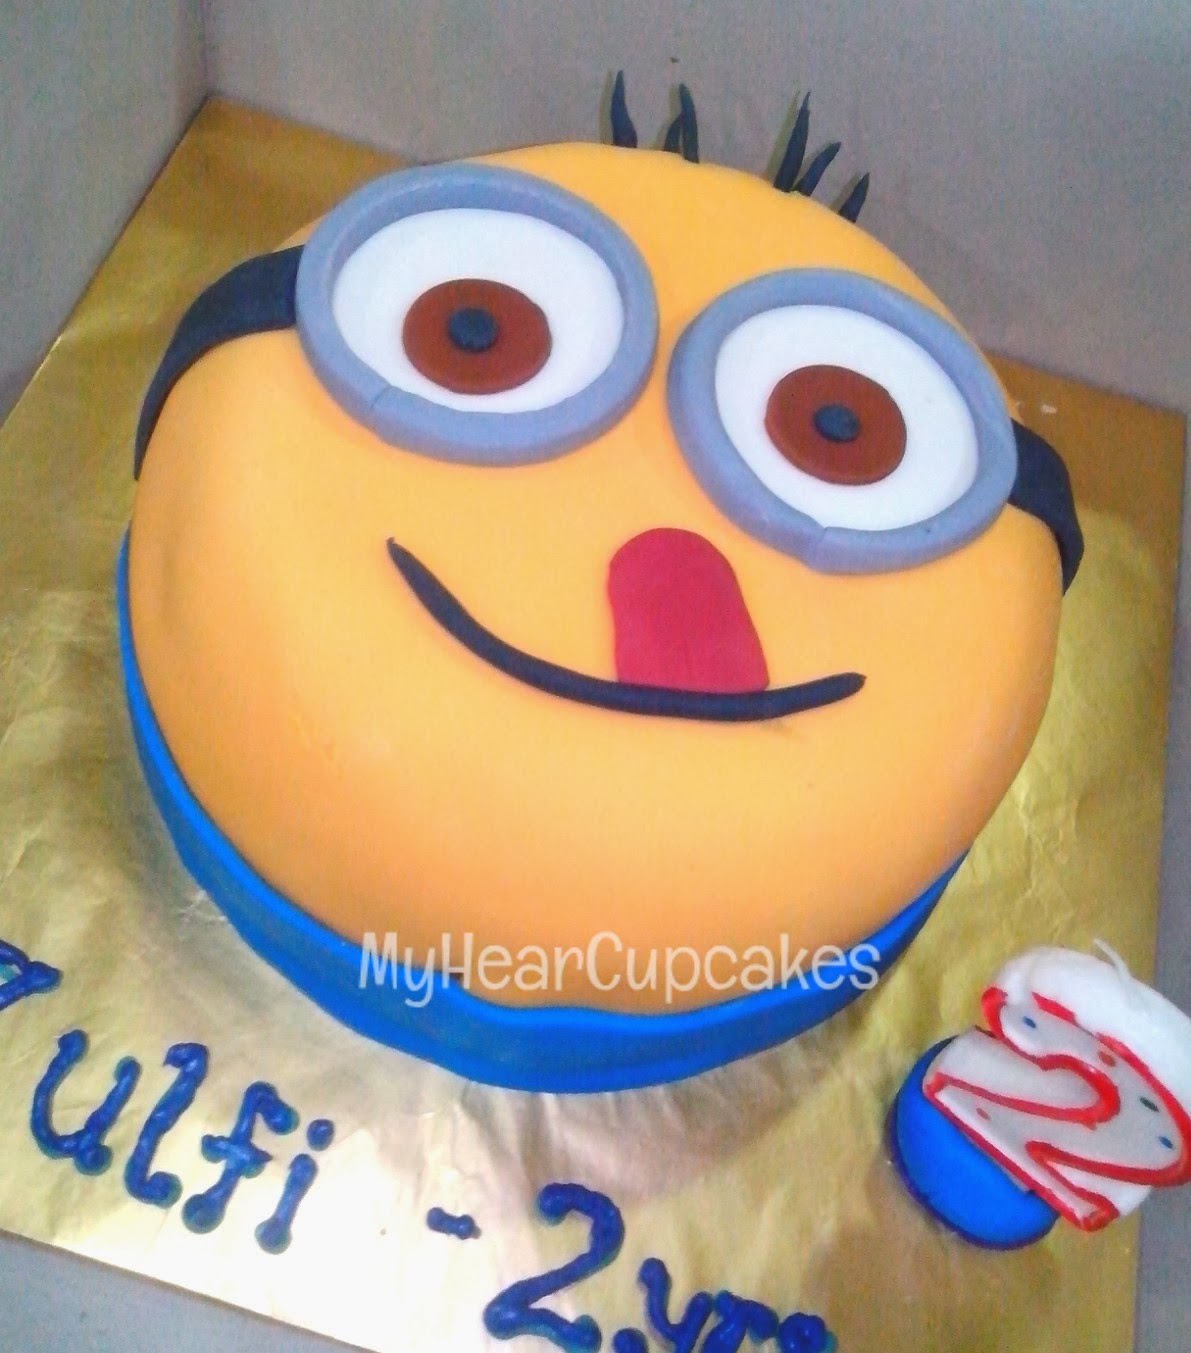 Birthday Cake Images With Cartoon Character : MyHeartCupcakes: Cartoon Character Cakes